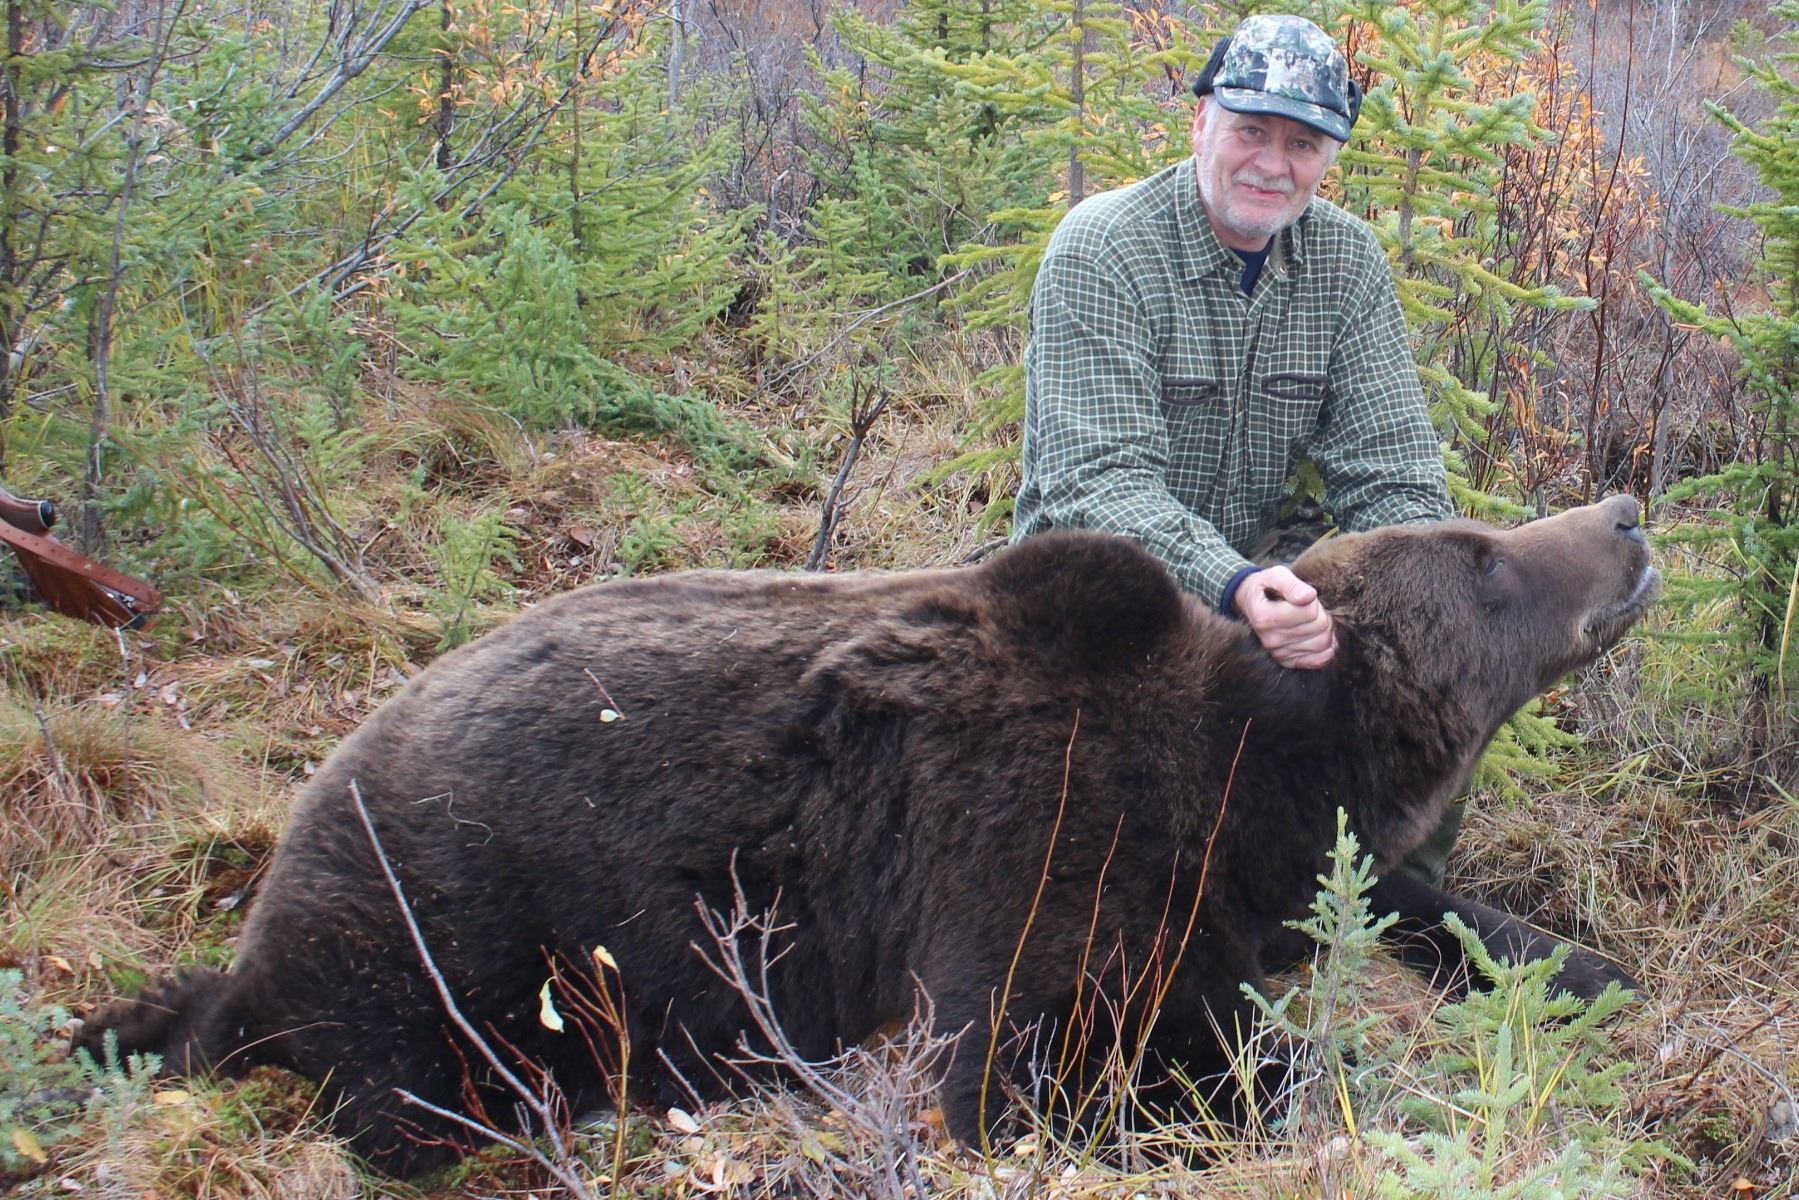 Grizzly and Black Bear Hunt in Remote Alaska